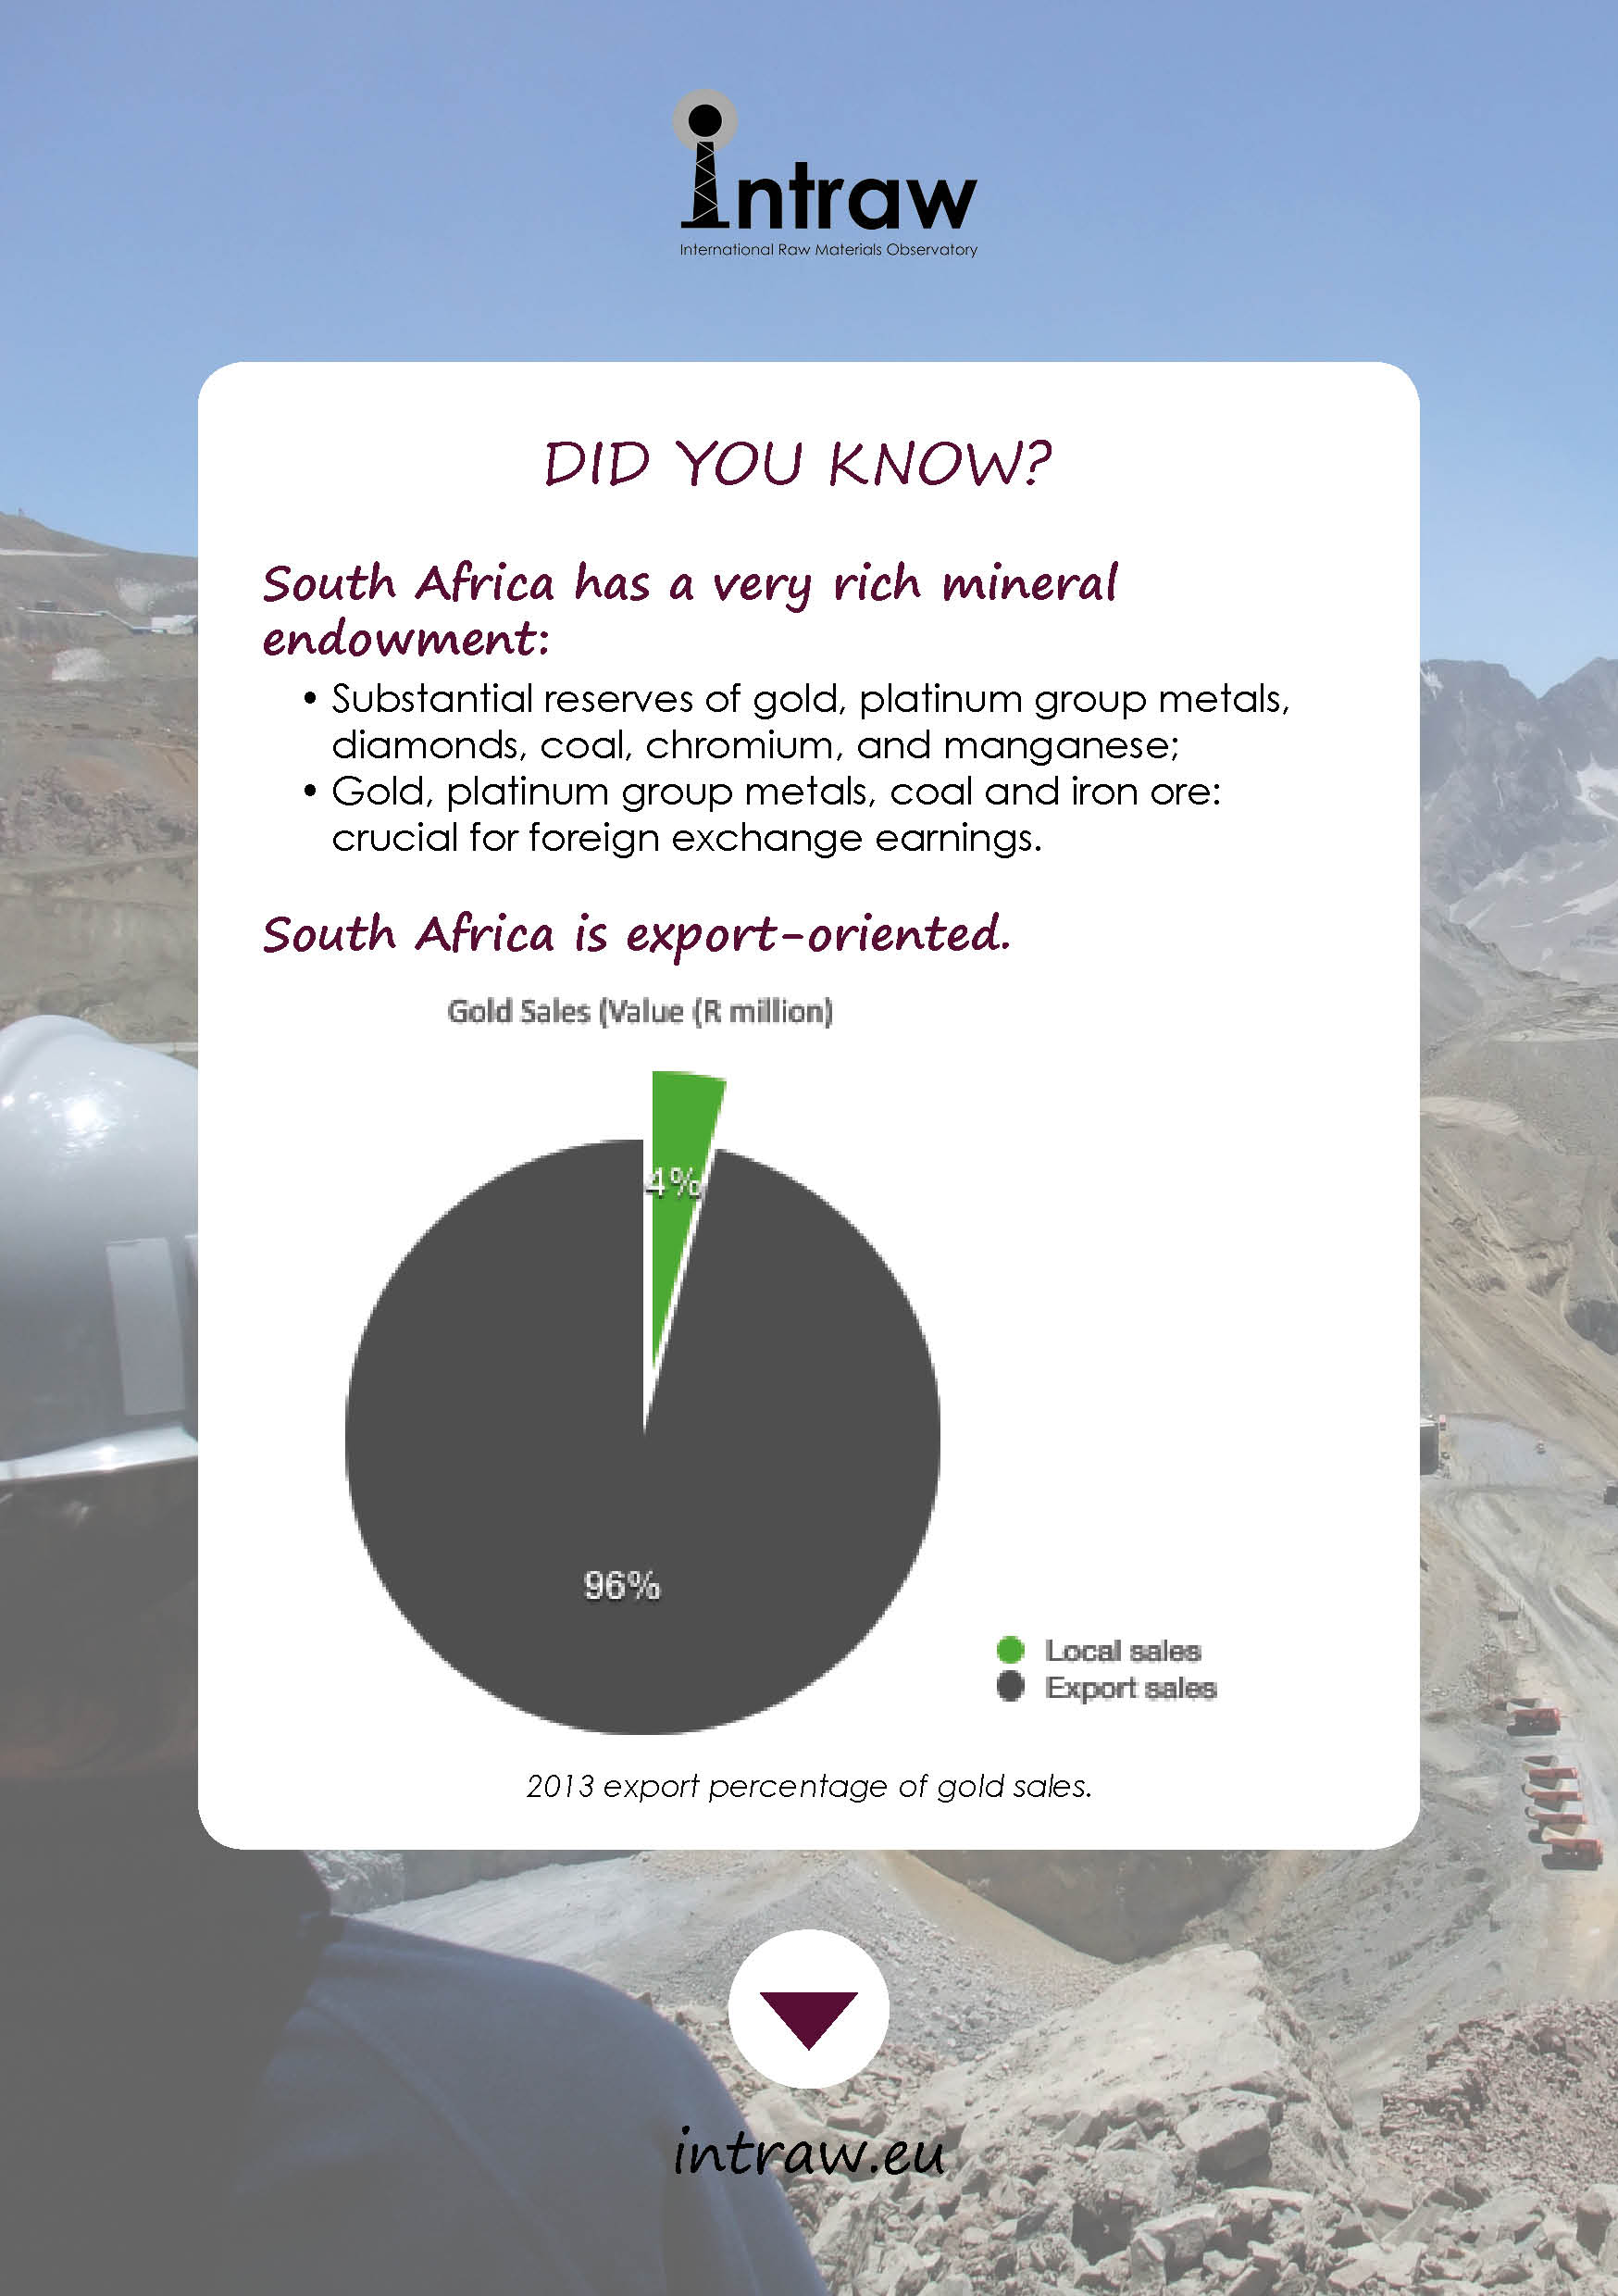 Discover SouthAfrica, first with a look at its very rich mineral endowment and cluster